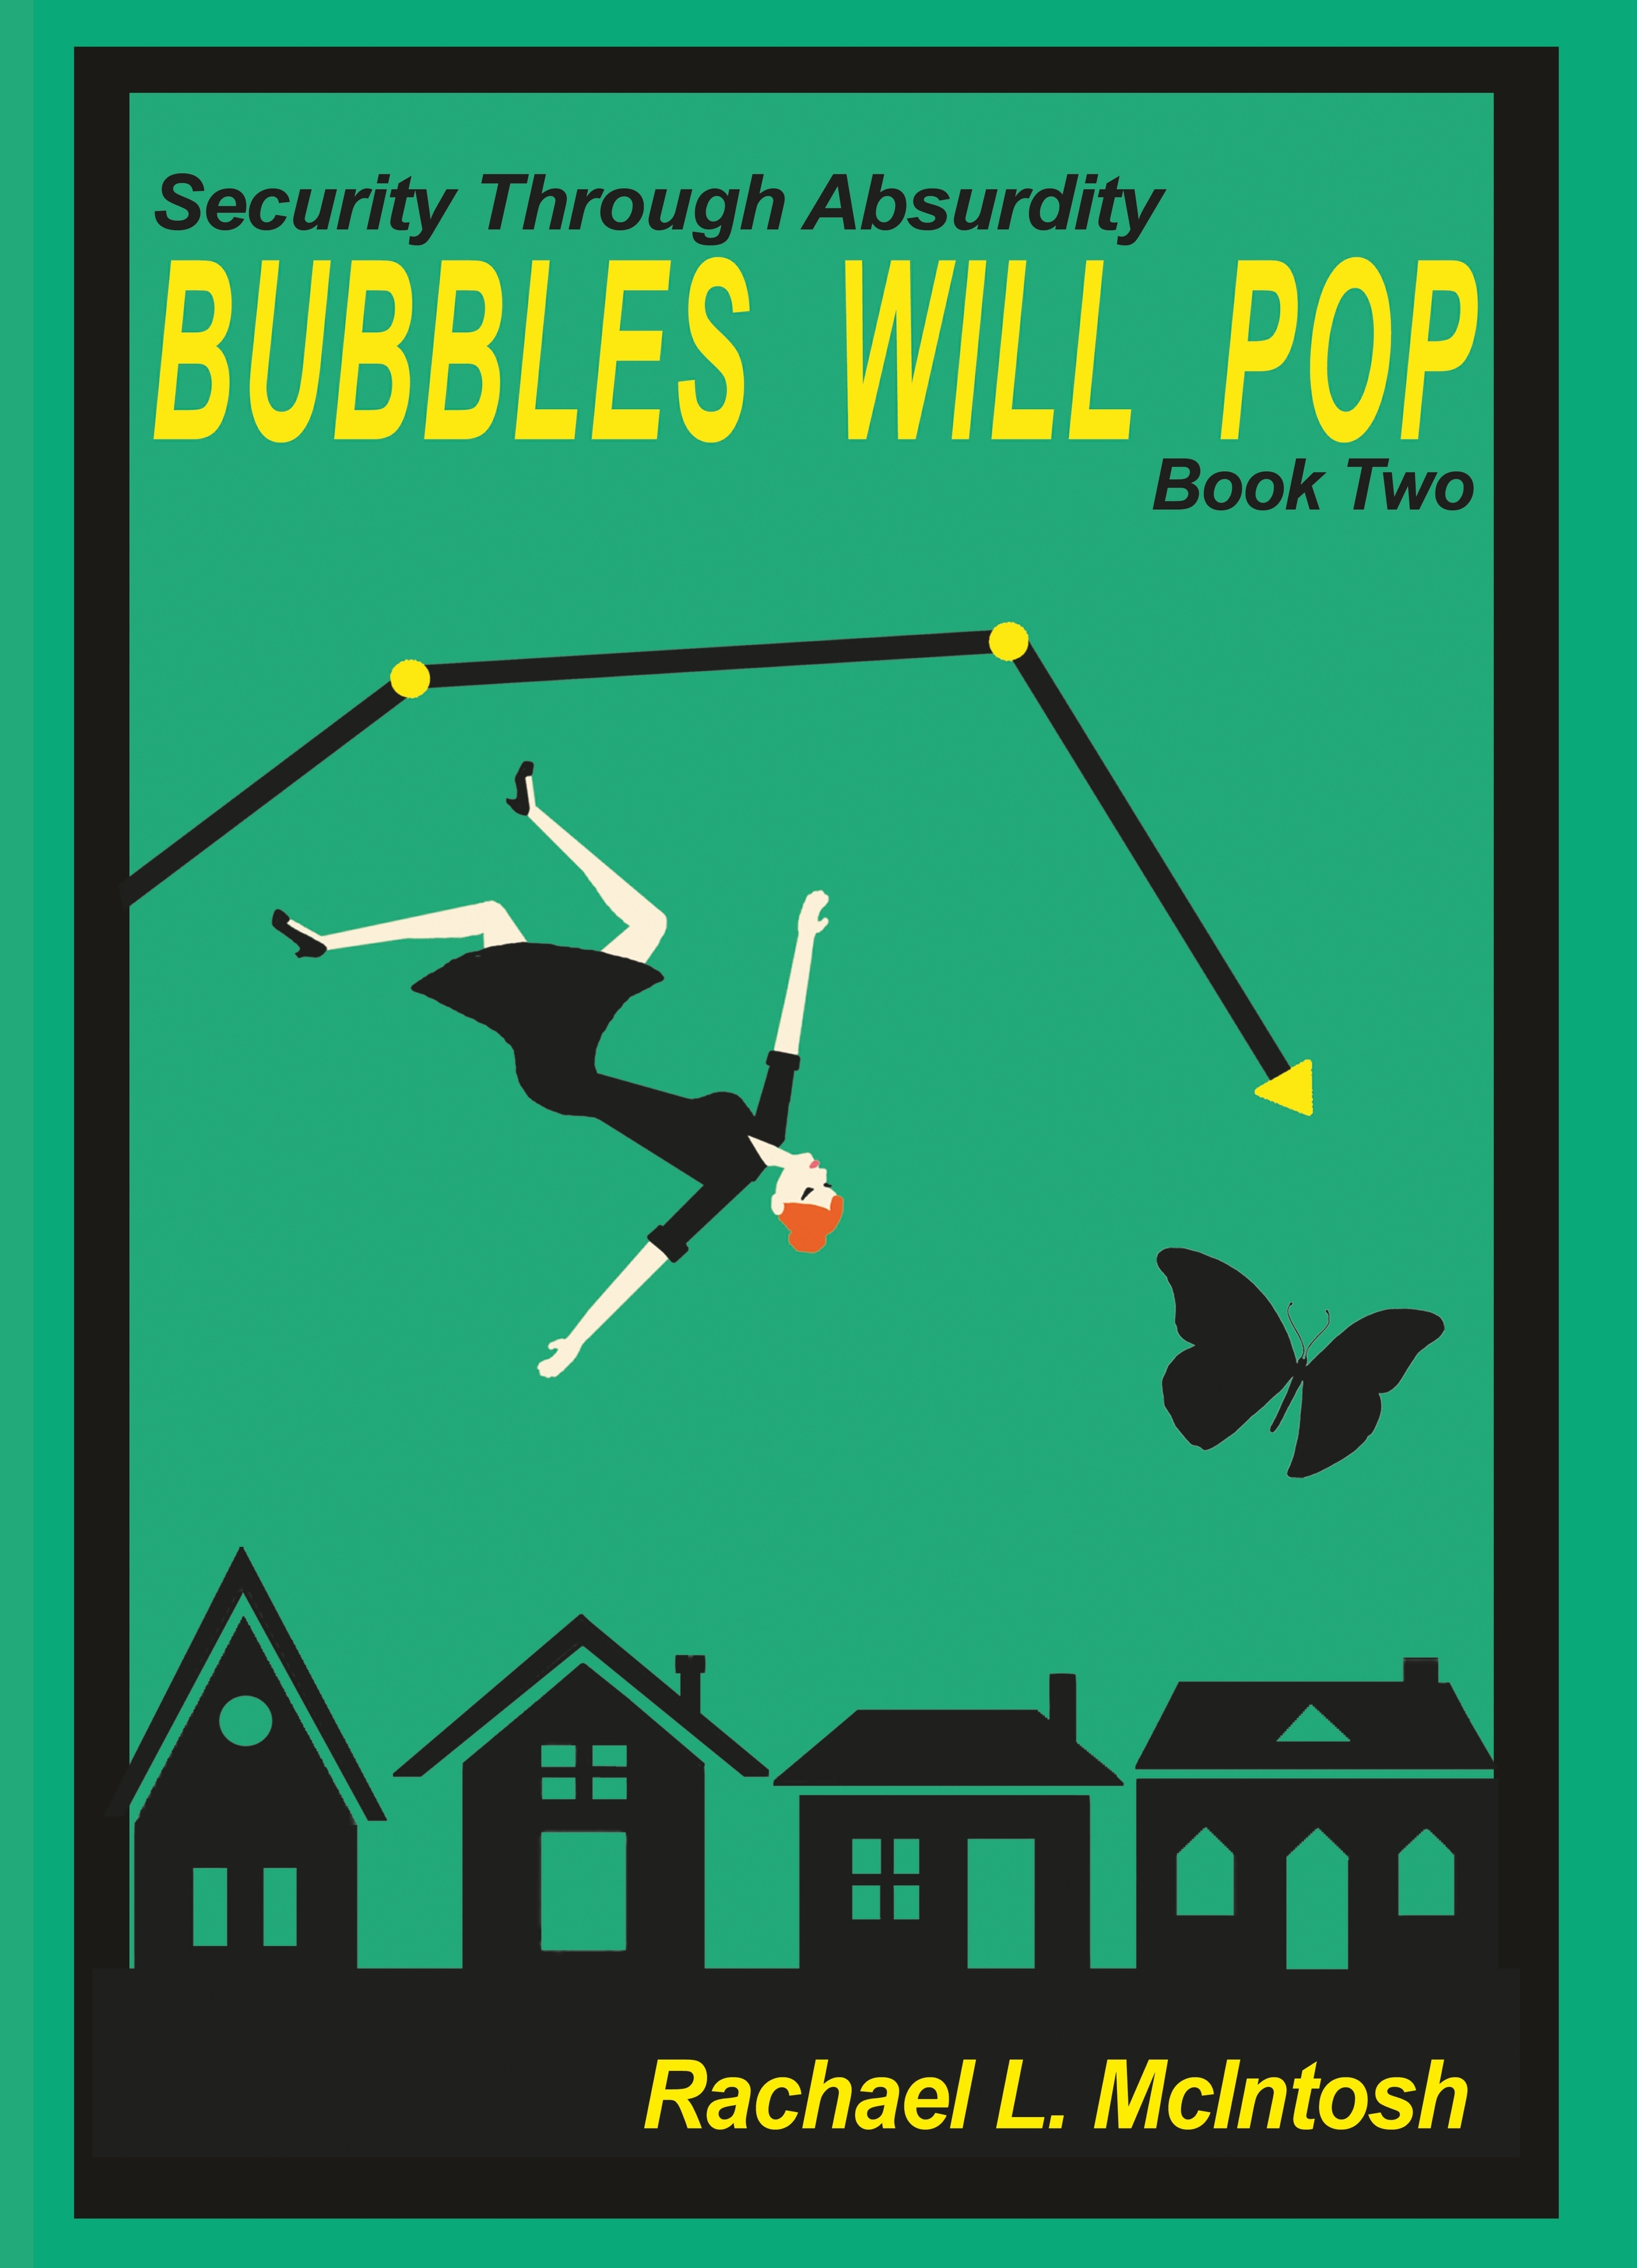 Security Through Absurdity: Bubbles Will Pop  by  Rachael L. McIntosh